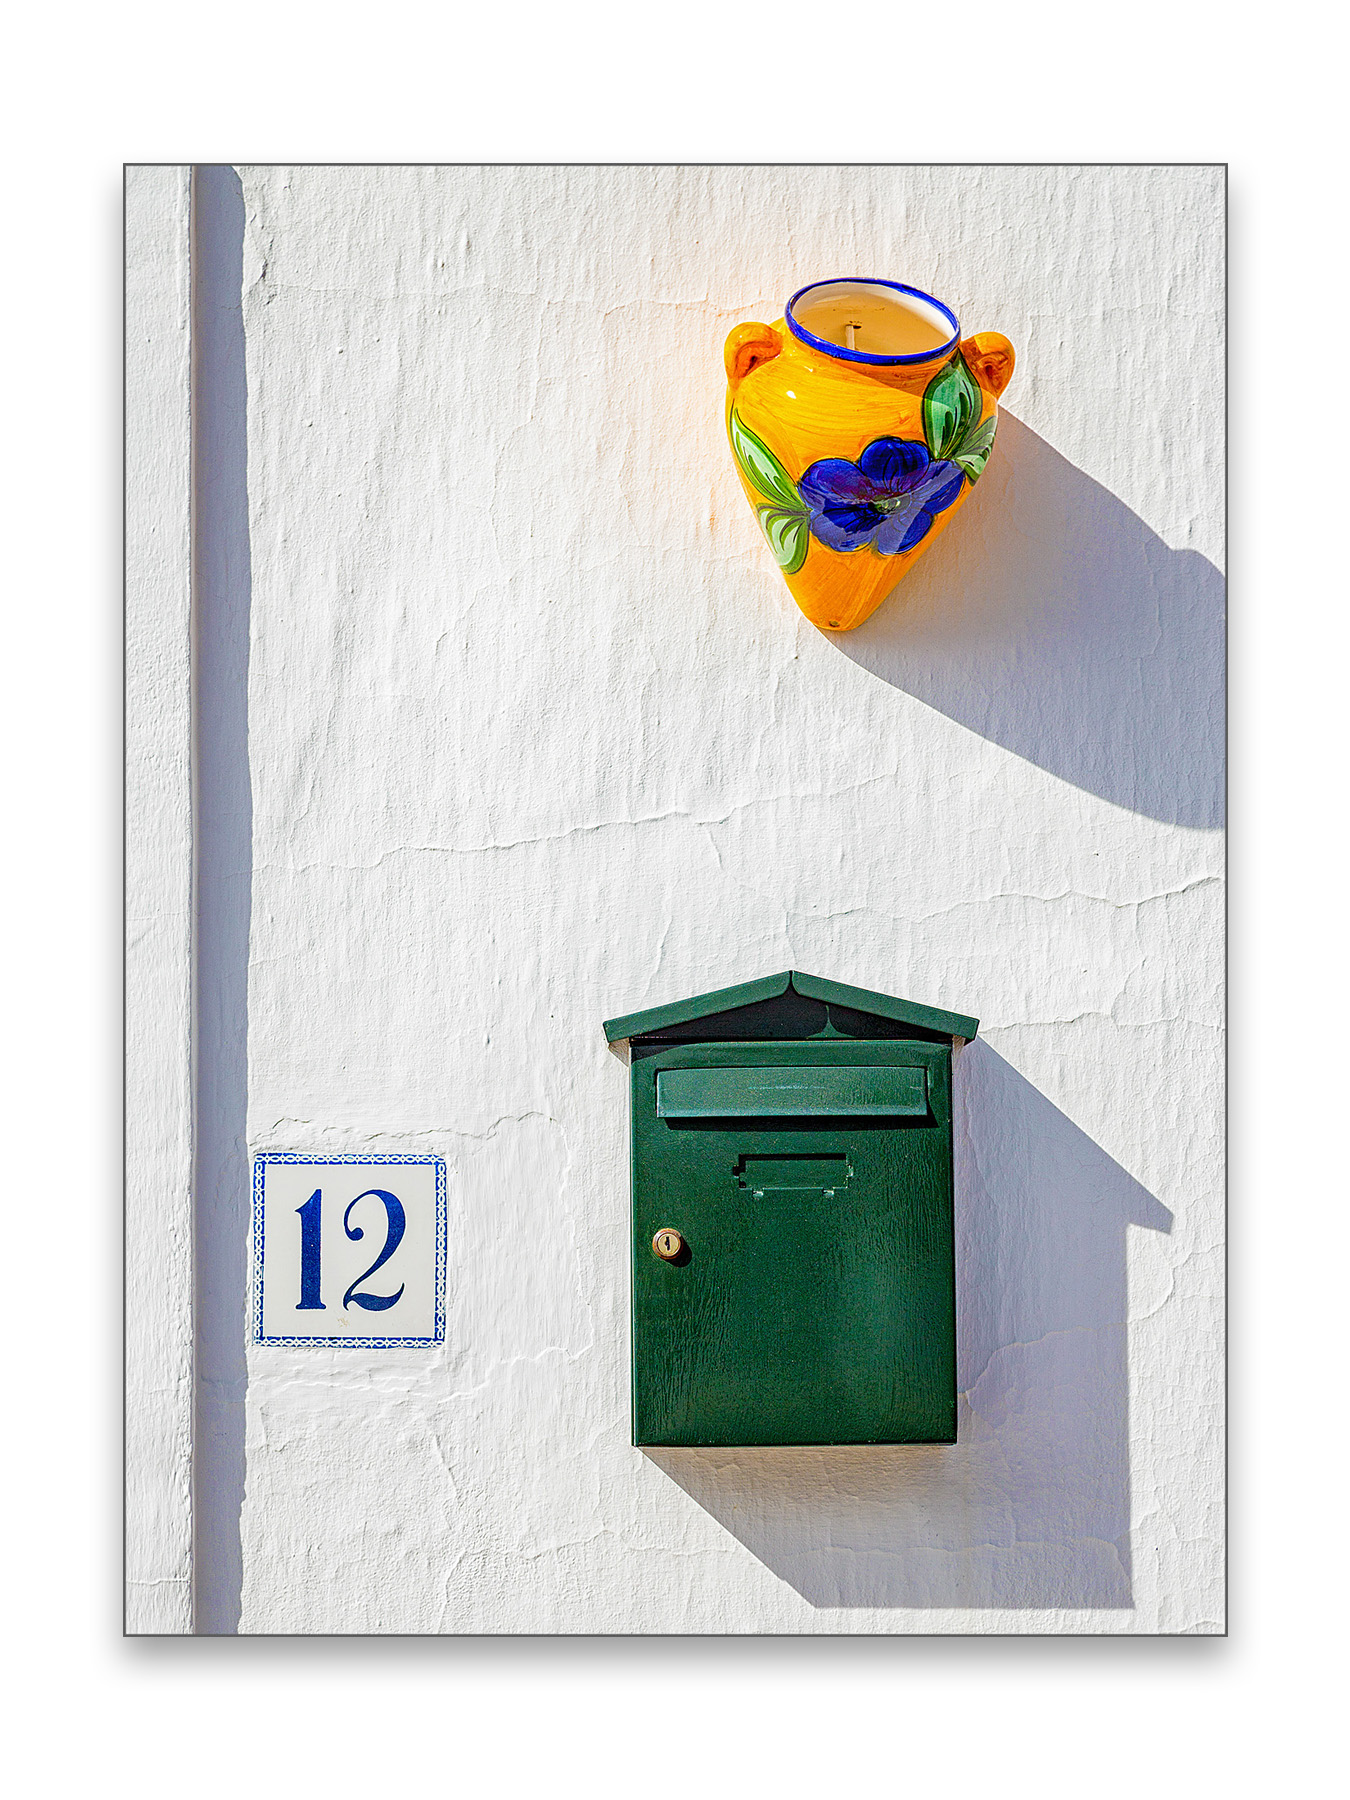 Green Letter Box - 30 x 40 cm € 65,-45 x 60 cm € 95,-60 x 90 cm, € 175,-Limited edition of 54 of 5 available